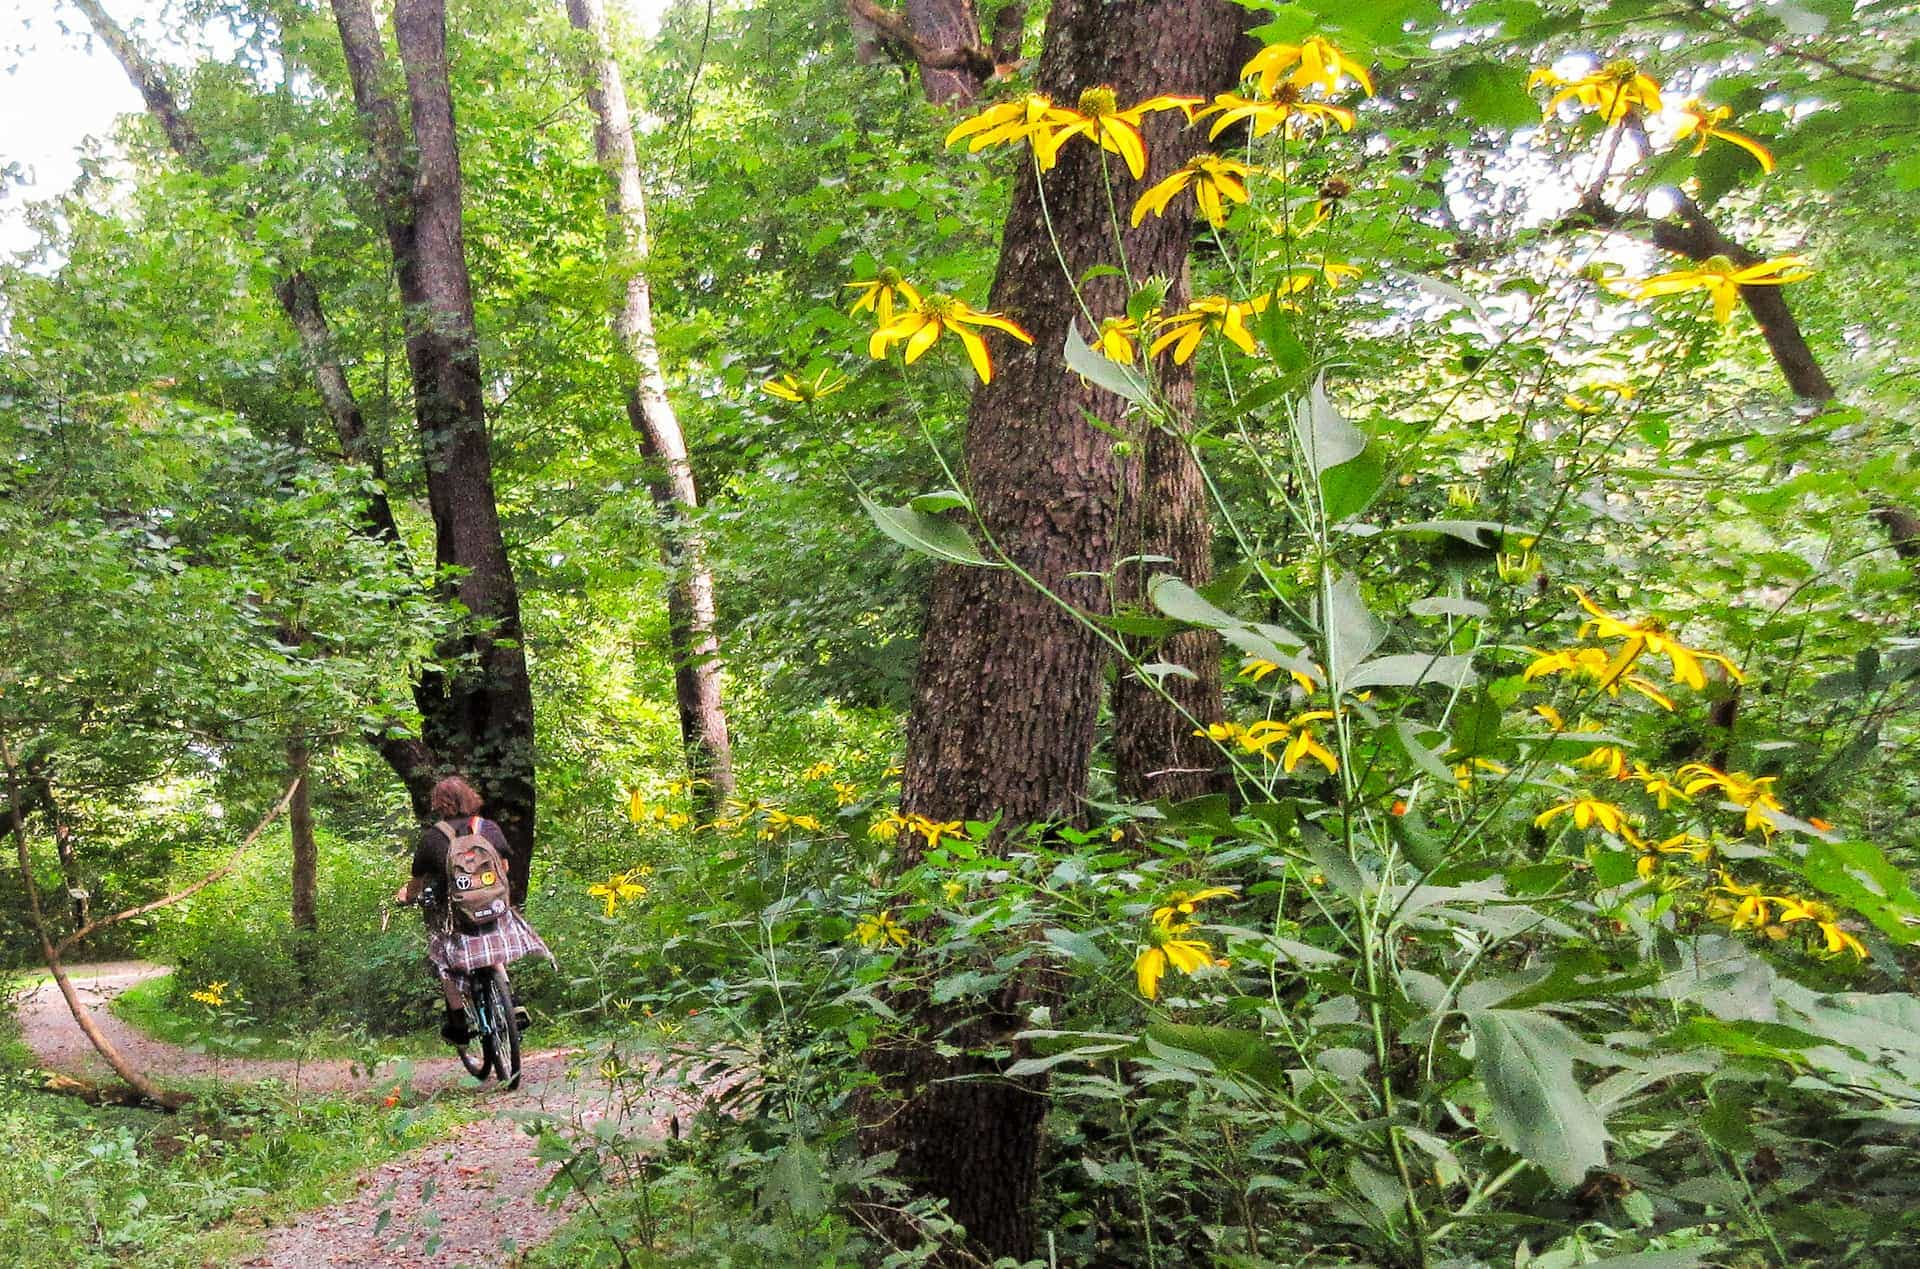 Community invited to explore origins of the Nature Park, Learning Trail Saturday at the Riverwalk